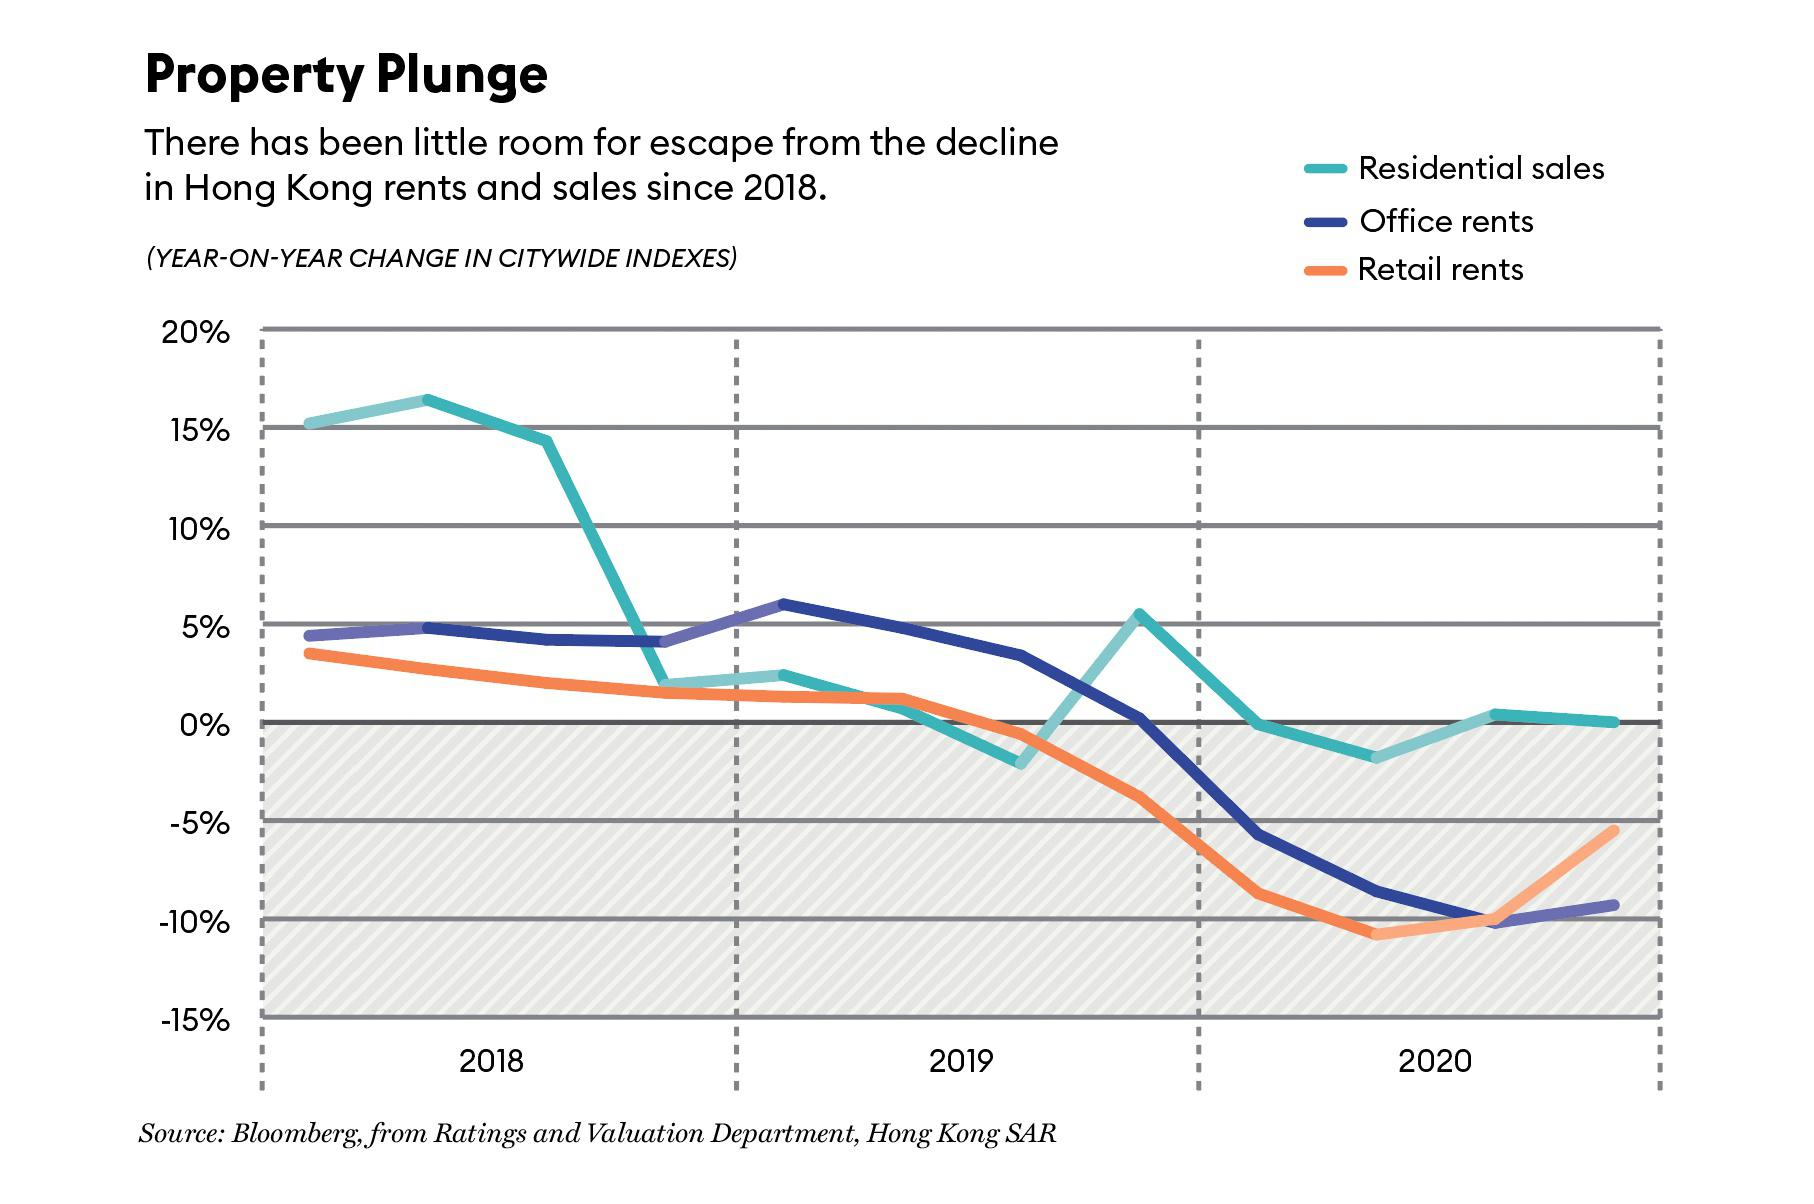 Hong Kong rents and sales from 2018 to 2020